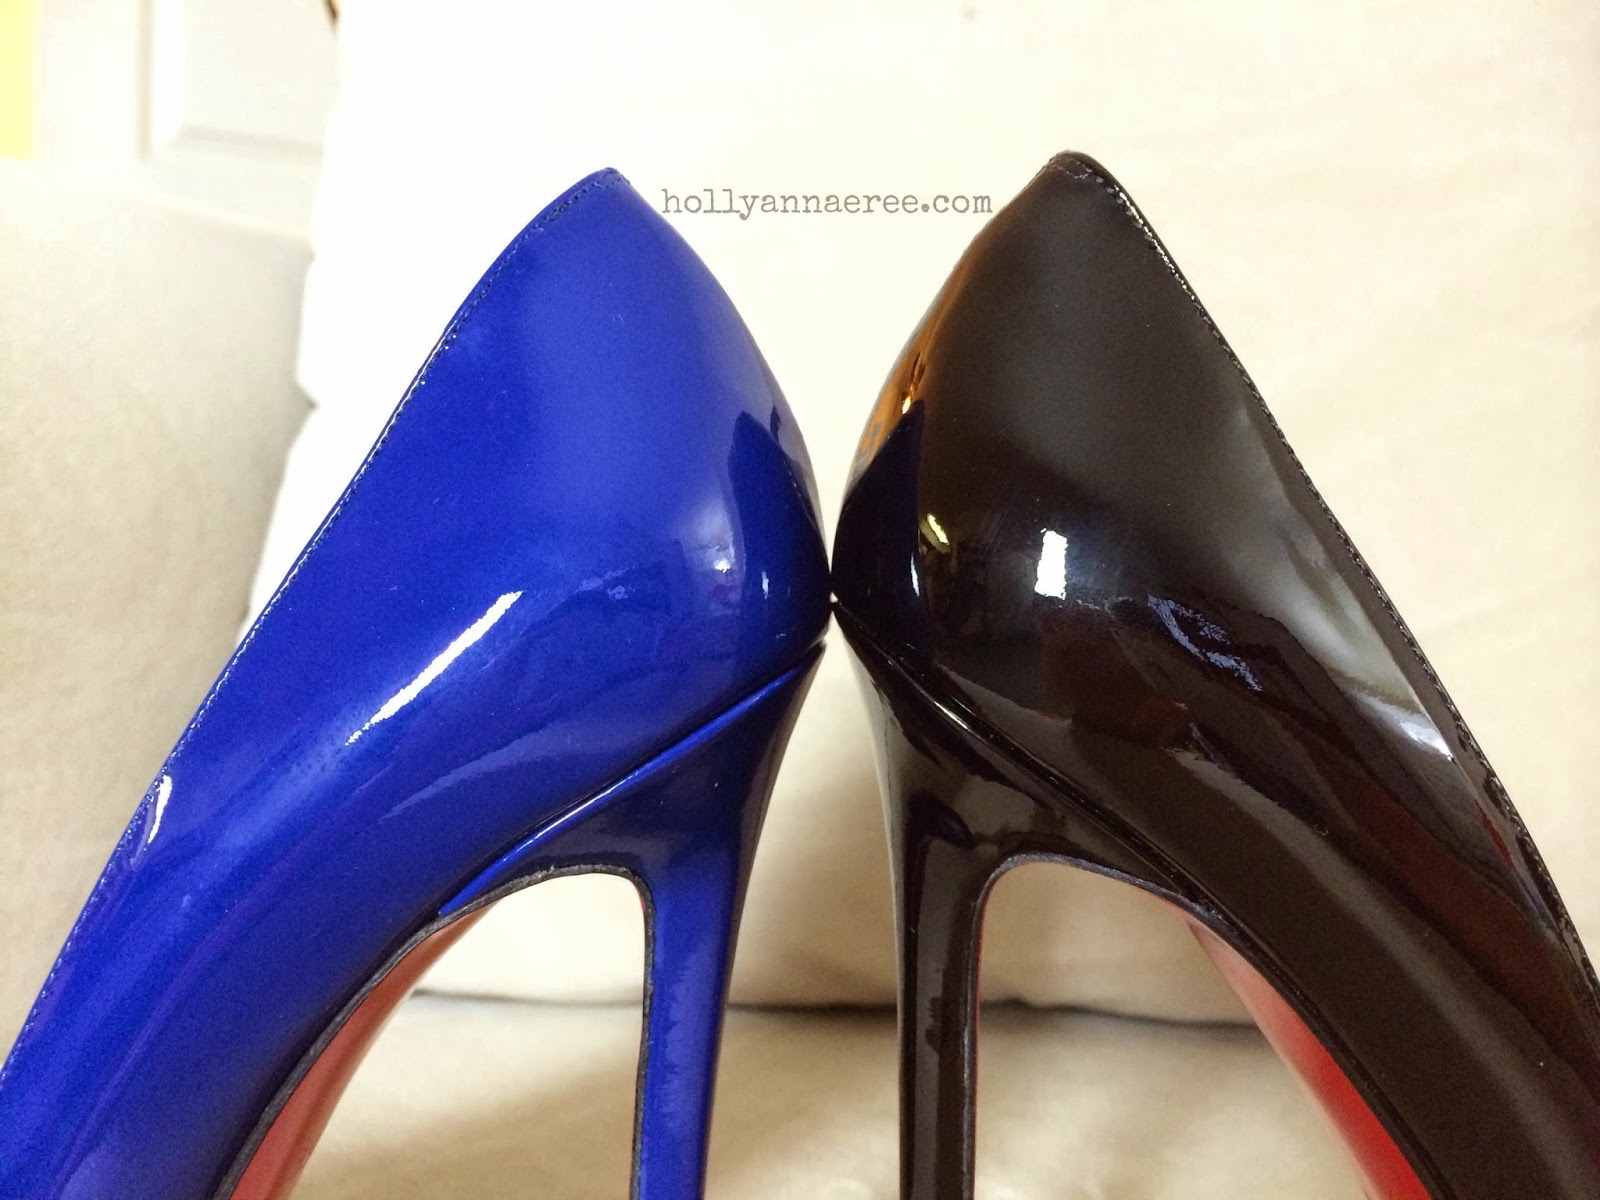 9bc4616cb347 Holly Ann-AeRee 2.0  Changes to the Christian Louboutin Pigalle 120mm -  WHYYY ! ! Comparison Photos (pic heavy)